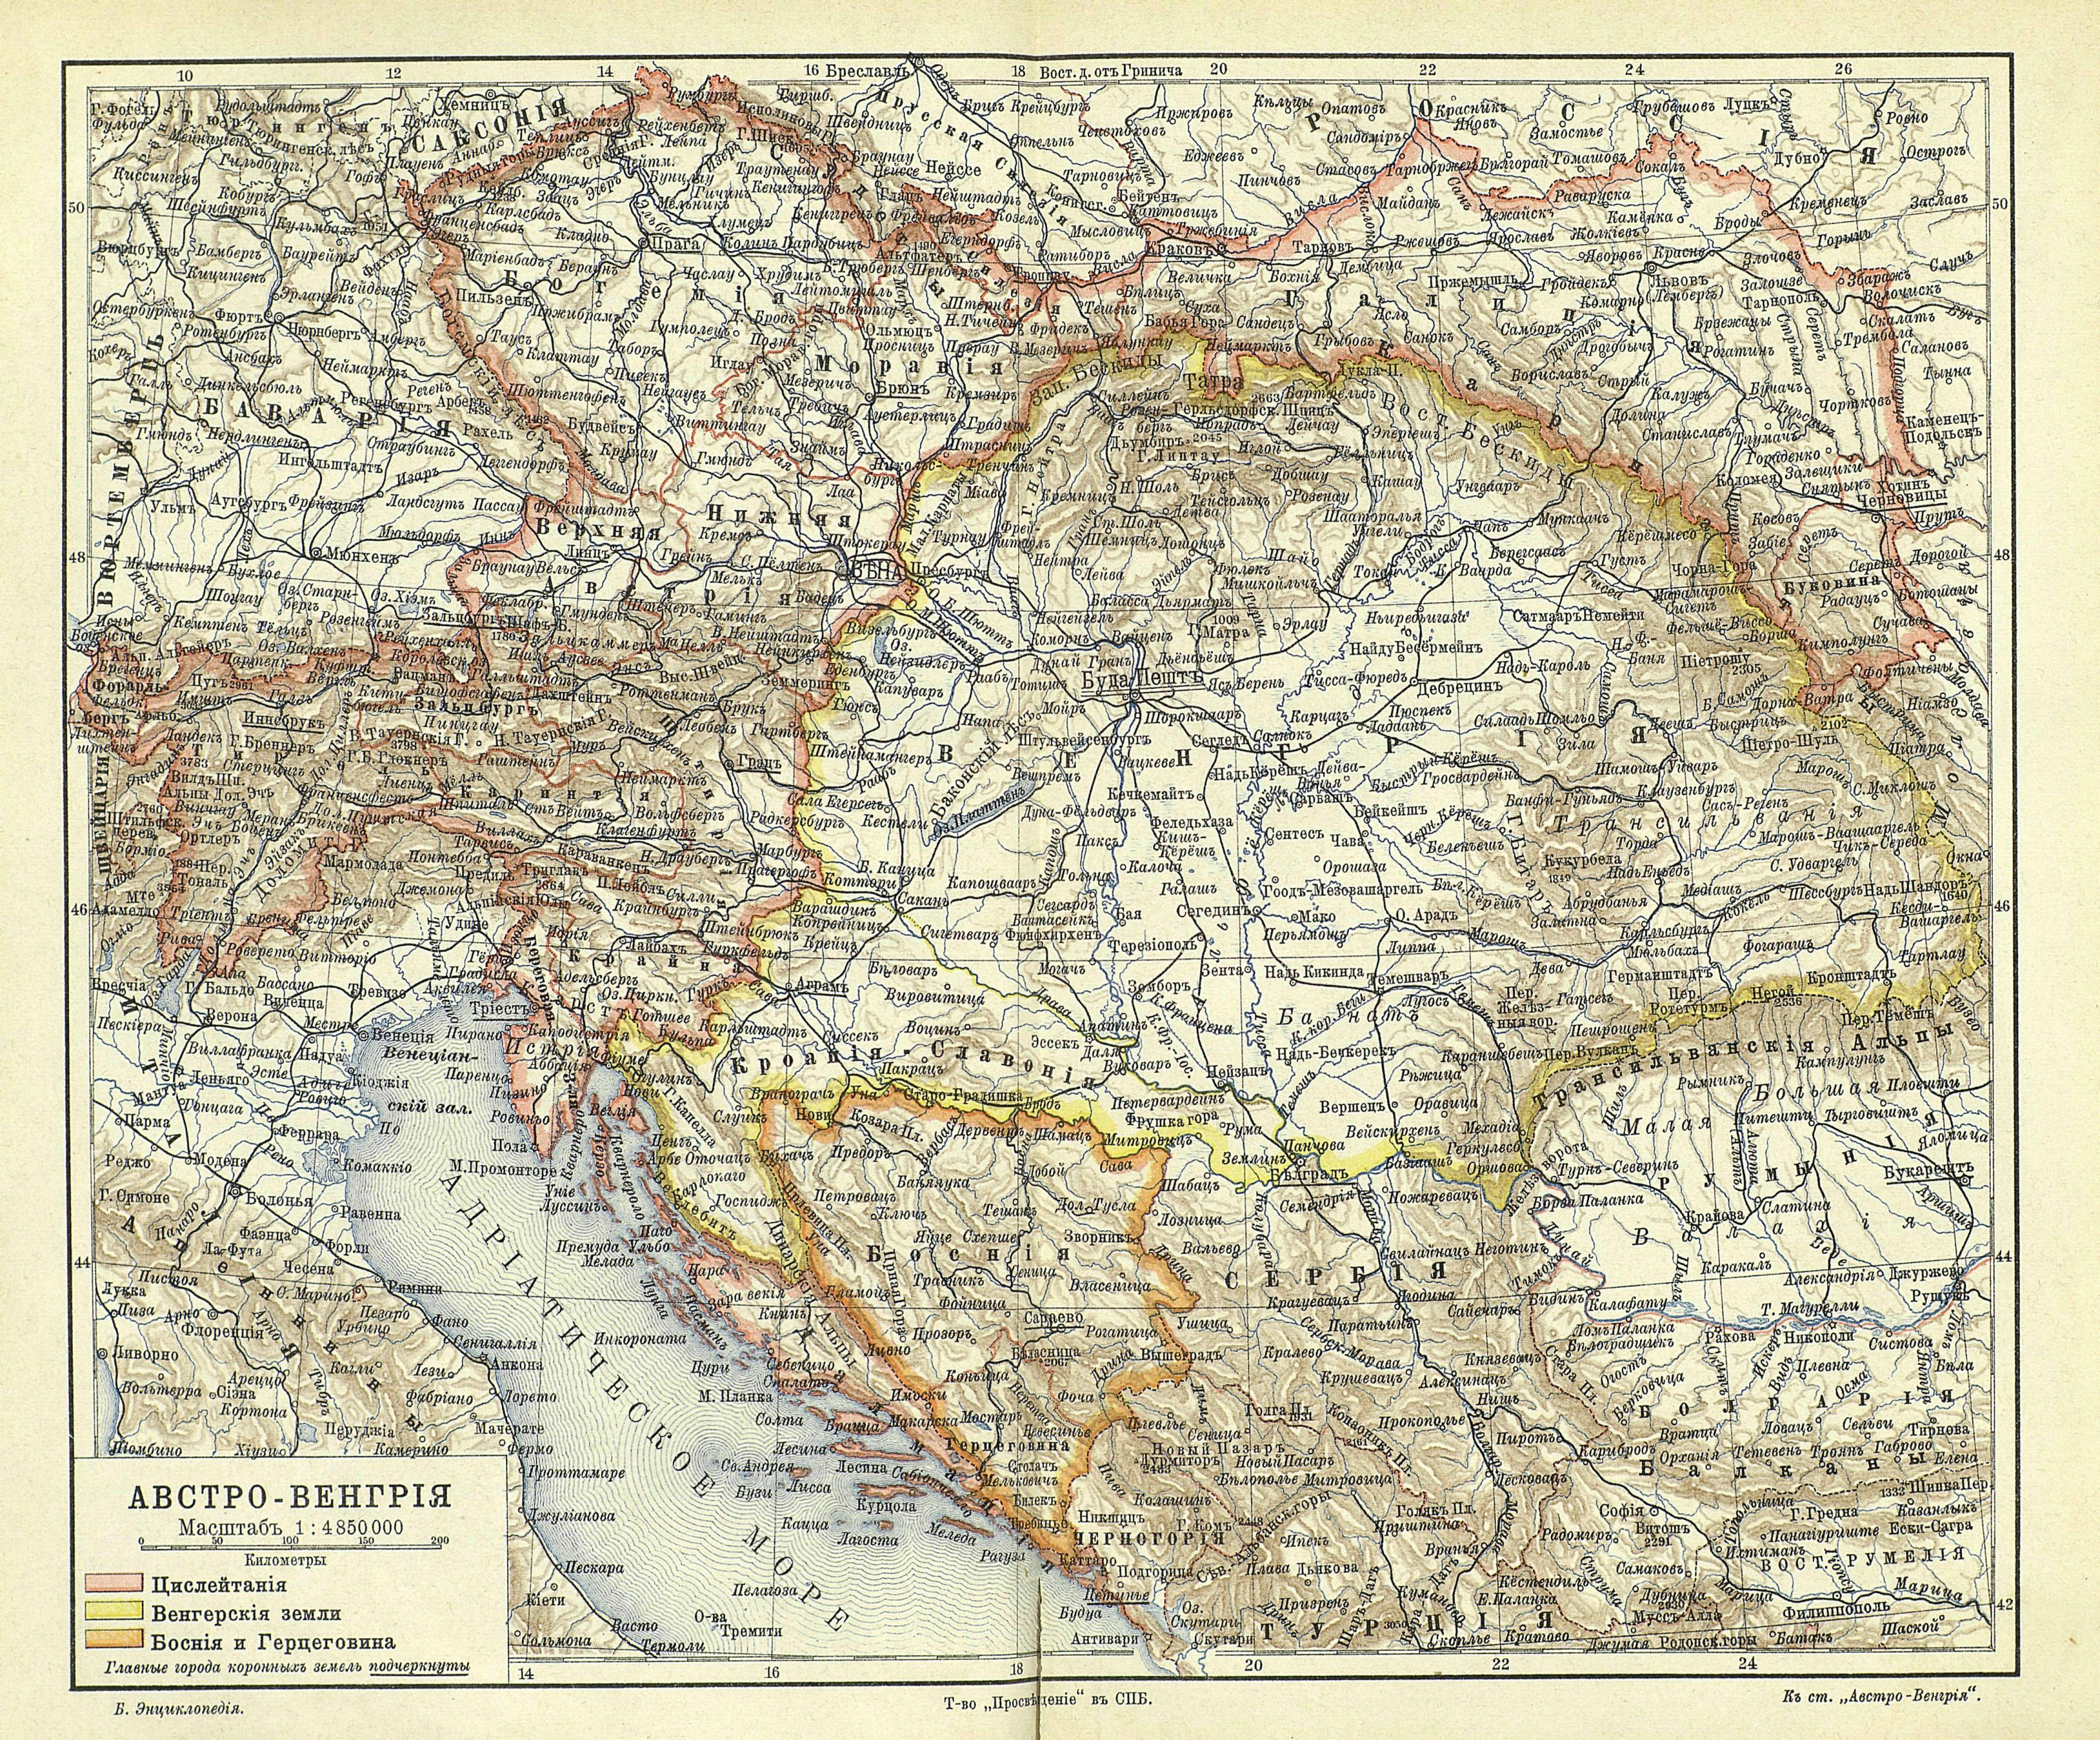 map of austria hungary 1900 1907 with File Yuzhakov Big Encyclopedia Map Of Austria Hungary on The Austro Hungarian Empire In 1897 besides India Maps as well Austria Hungary Antique Map 1907 Dodd moreover File Yuzhakov Big Encyclopedia Map of Austria Hungary additionally Literacy Rate In Austria Hungary 1880.